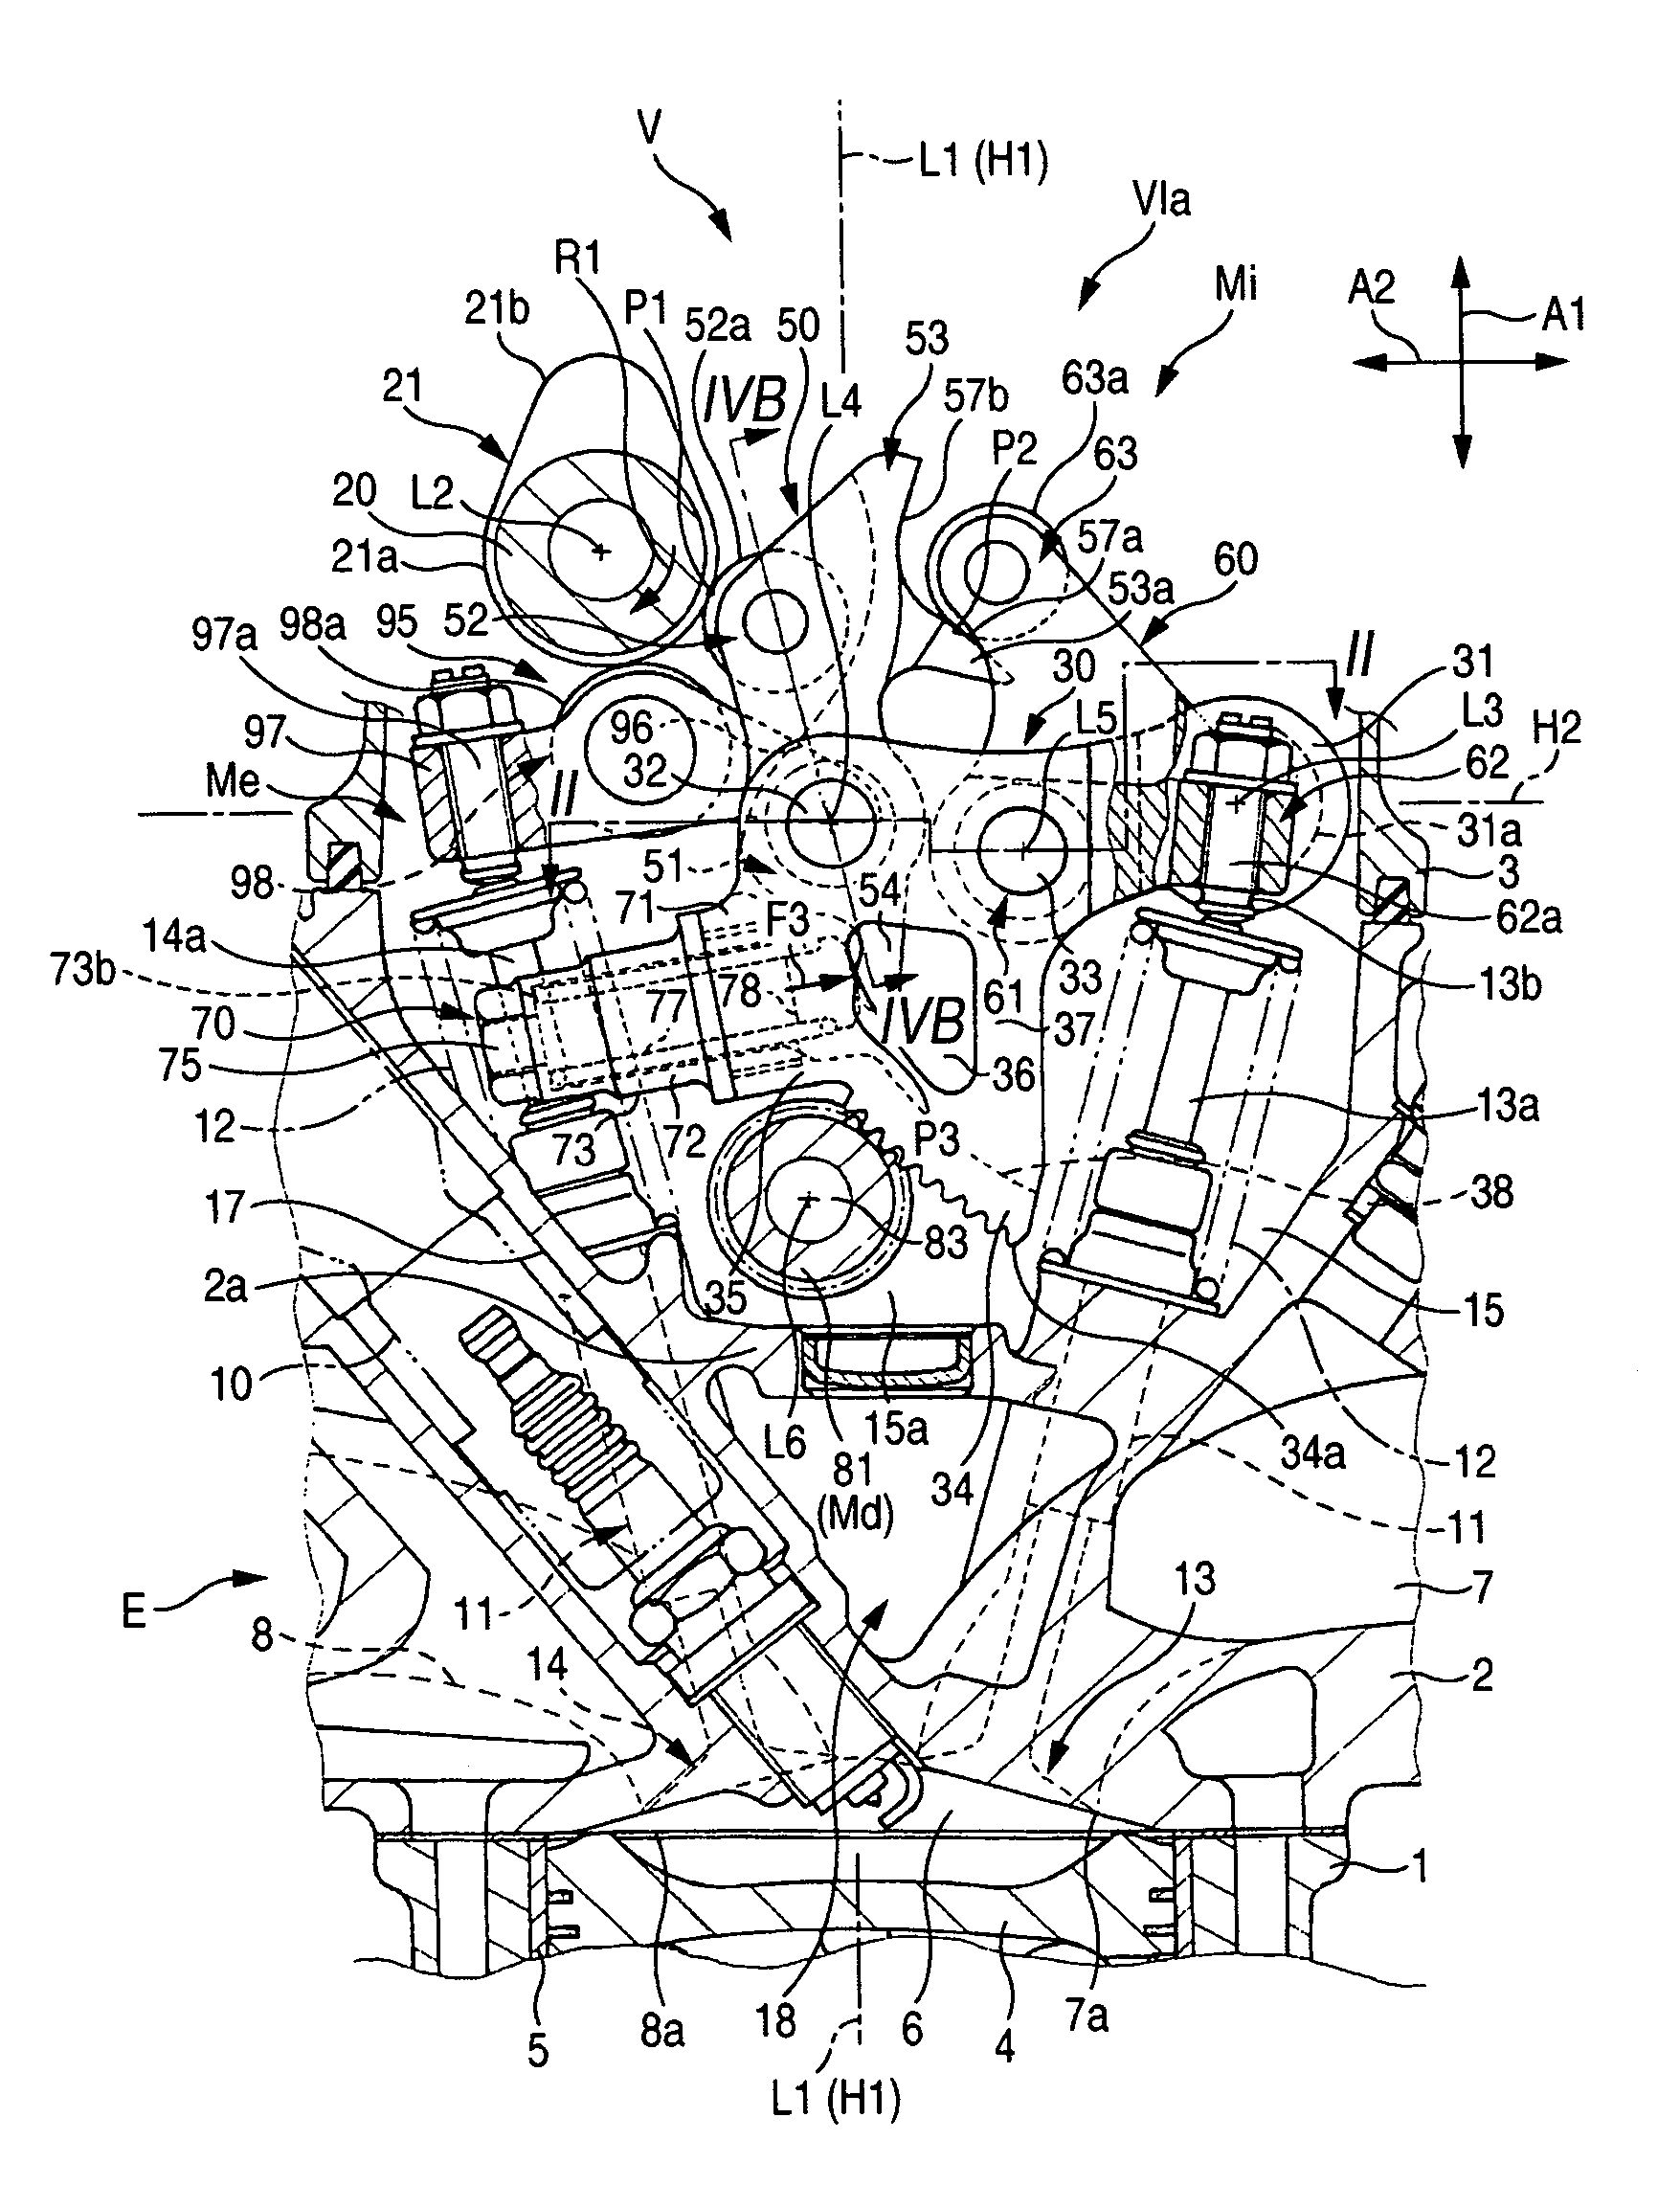 Simple Internal Combustion Engine Diagram Valve Train Of Schematic Machine Mechanical Horse Types